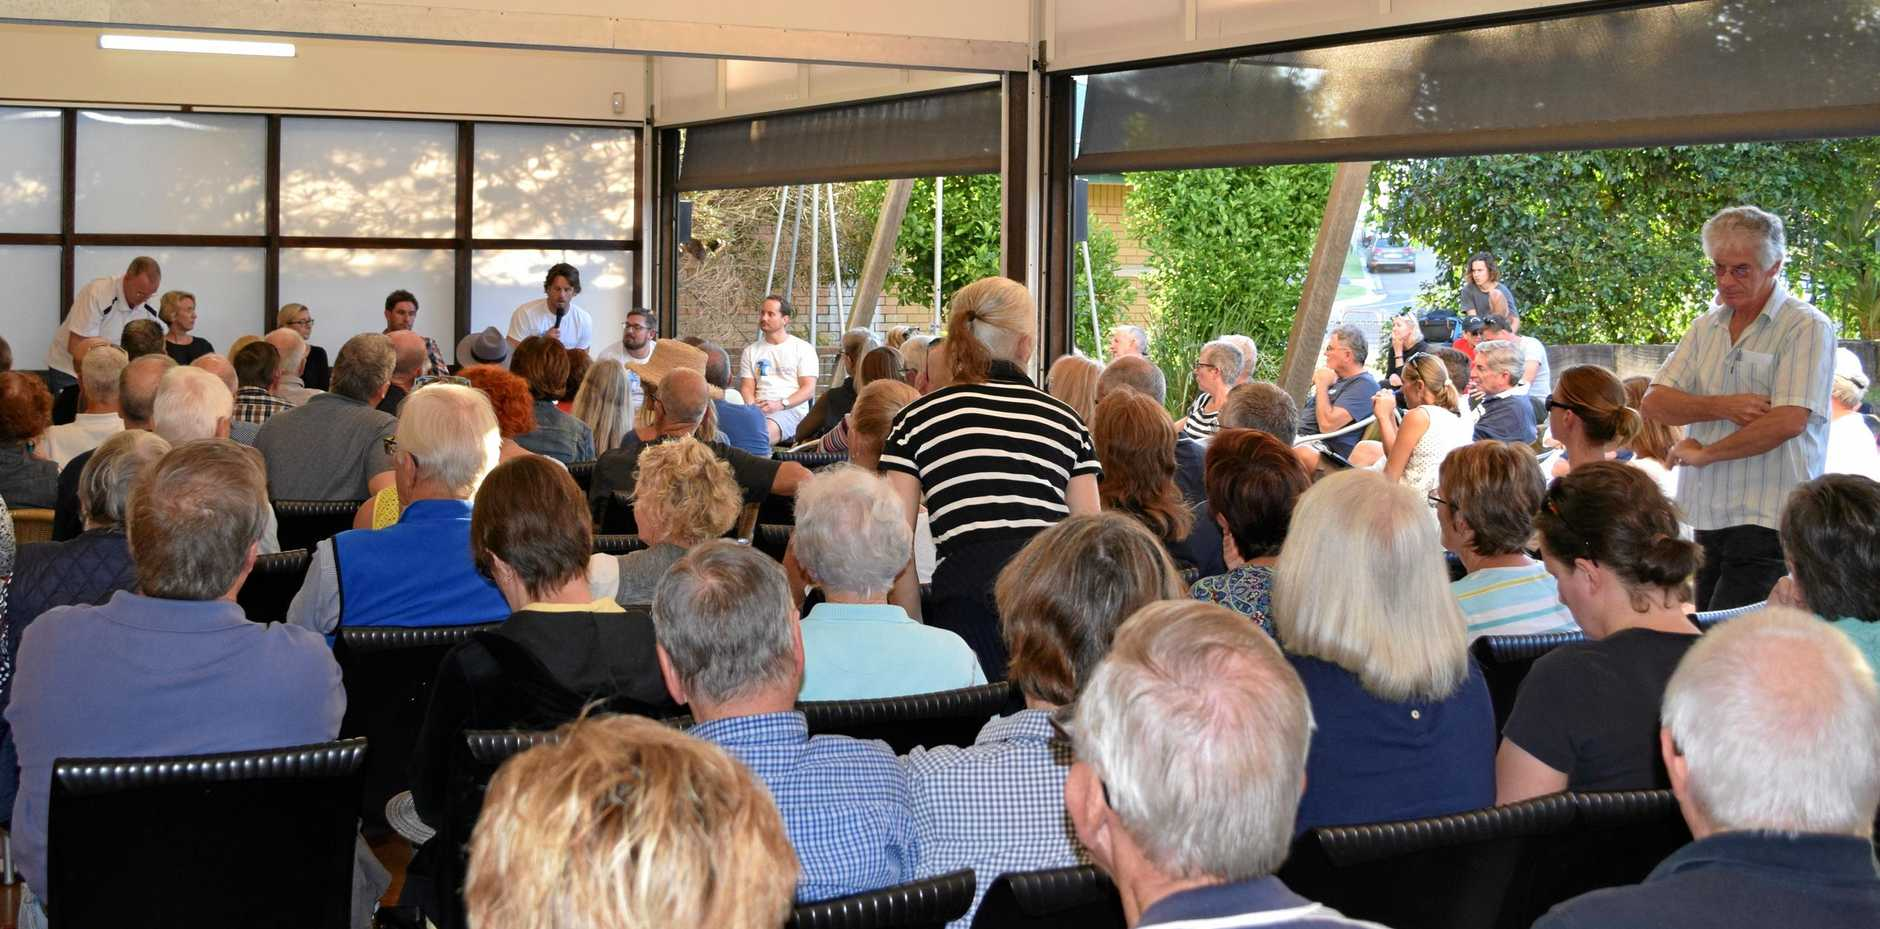 PACKED: The Peregian surf club information meeting saw the crowd spill out on the veranda and lawn